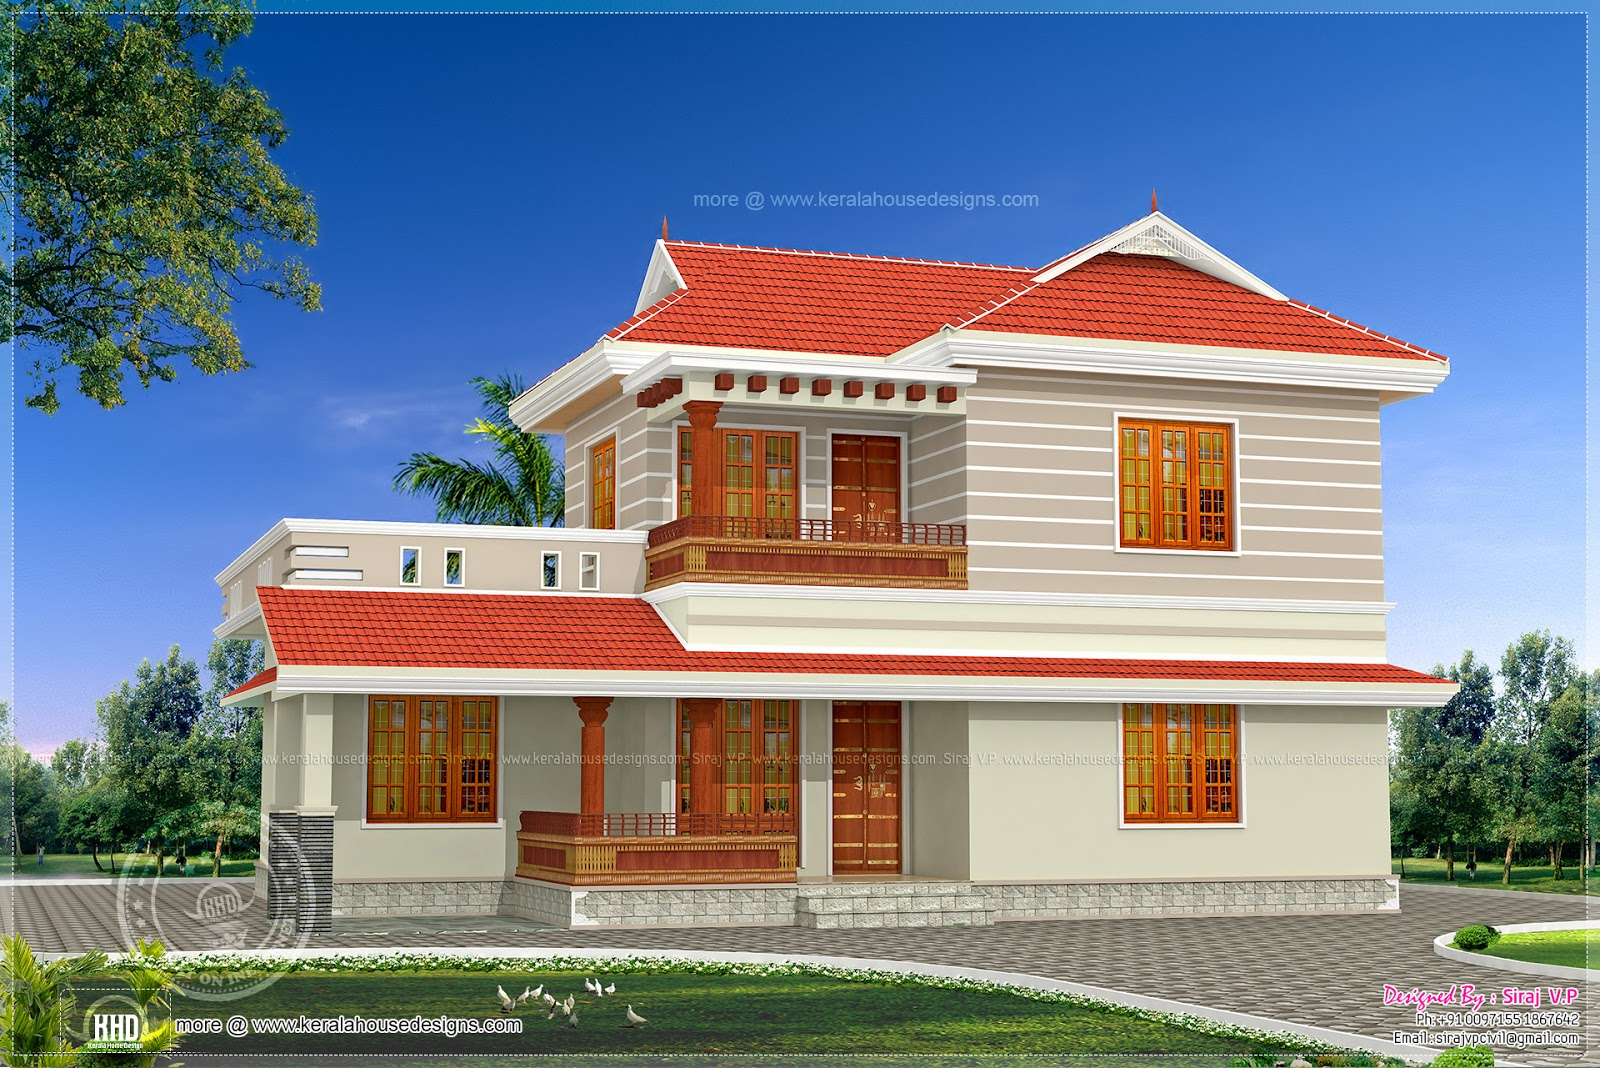 3 bedroom house exterior design in 200 square yards kerala home design and floor plans - Gorgeous housessquare meters ...